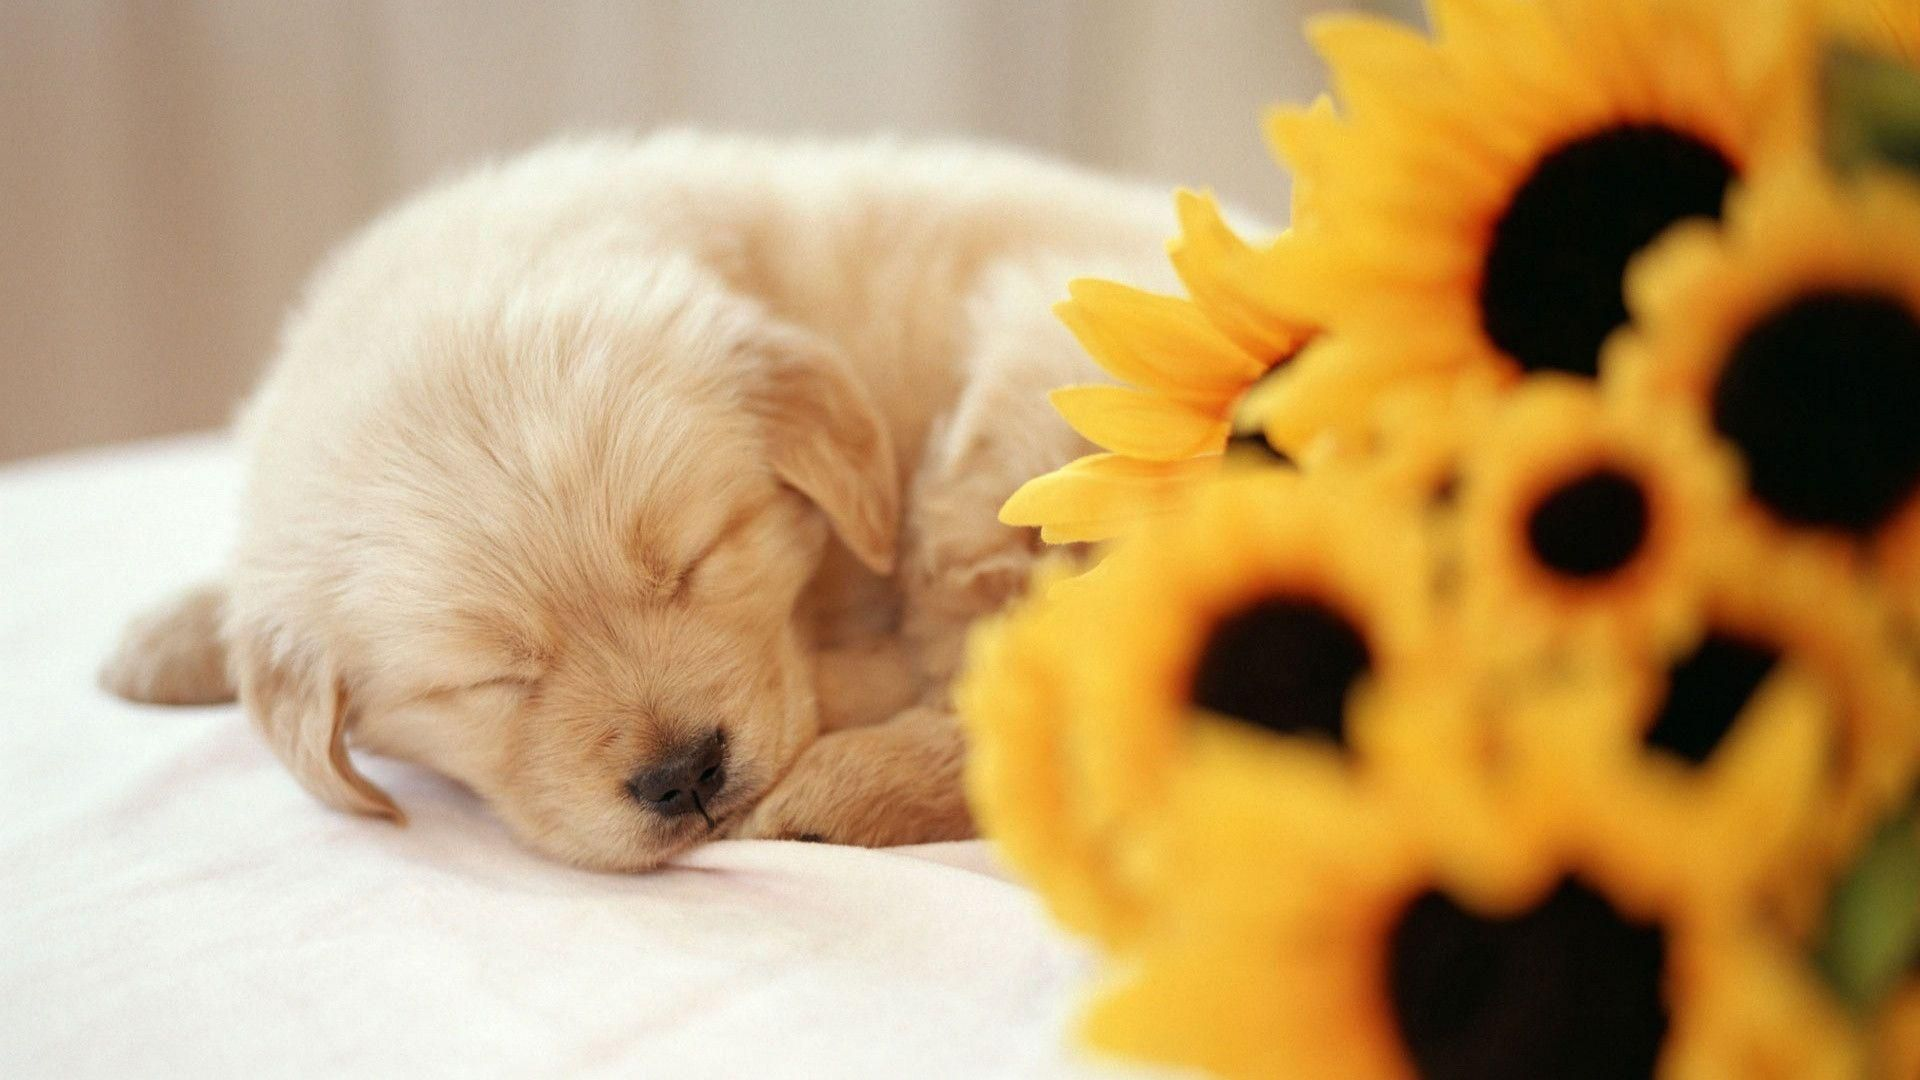 Puppies Free Hd Wallpapers And Backgrounds Download 54 Puppies Free Hd Wallpapers And Backgrounds Download Puppy Wallpaper Sleeping Puppies Puppy Backgrounds